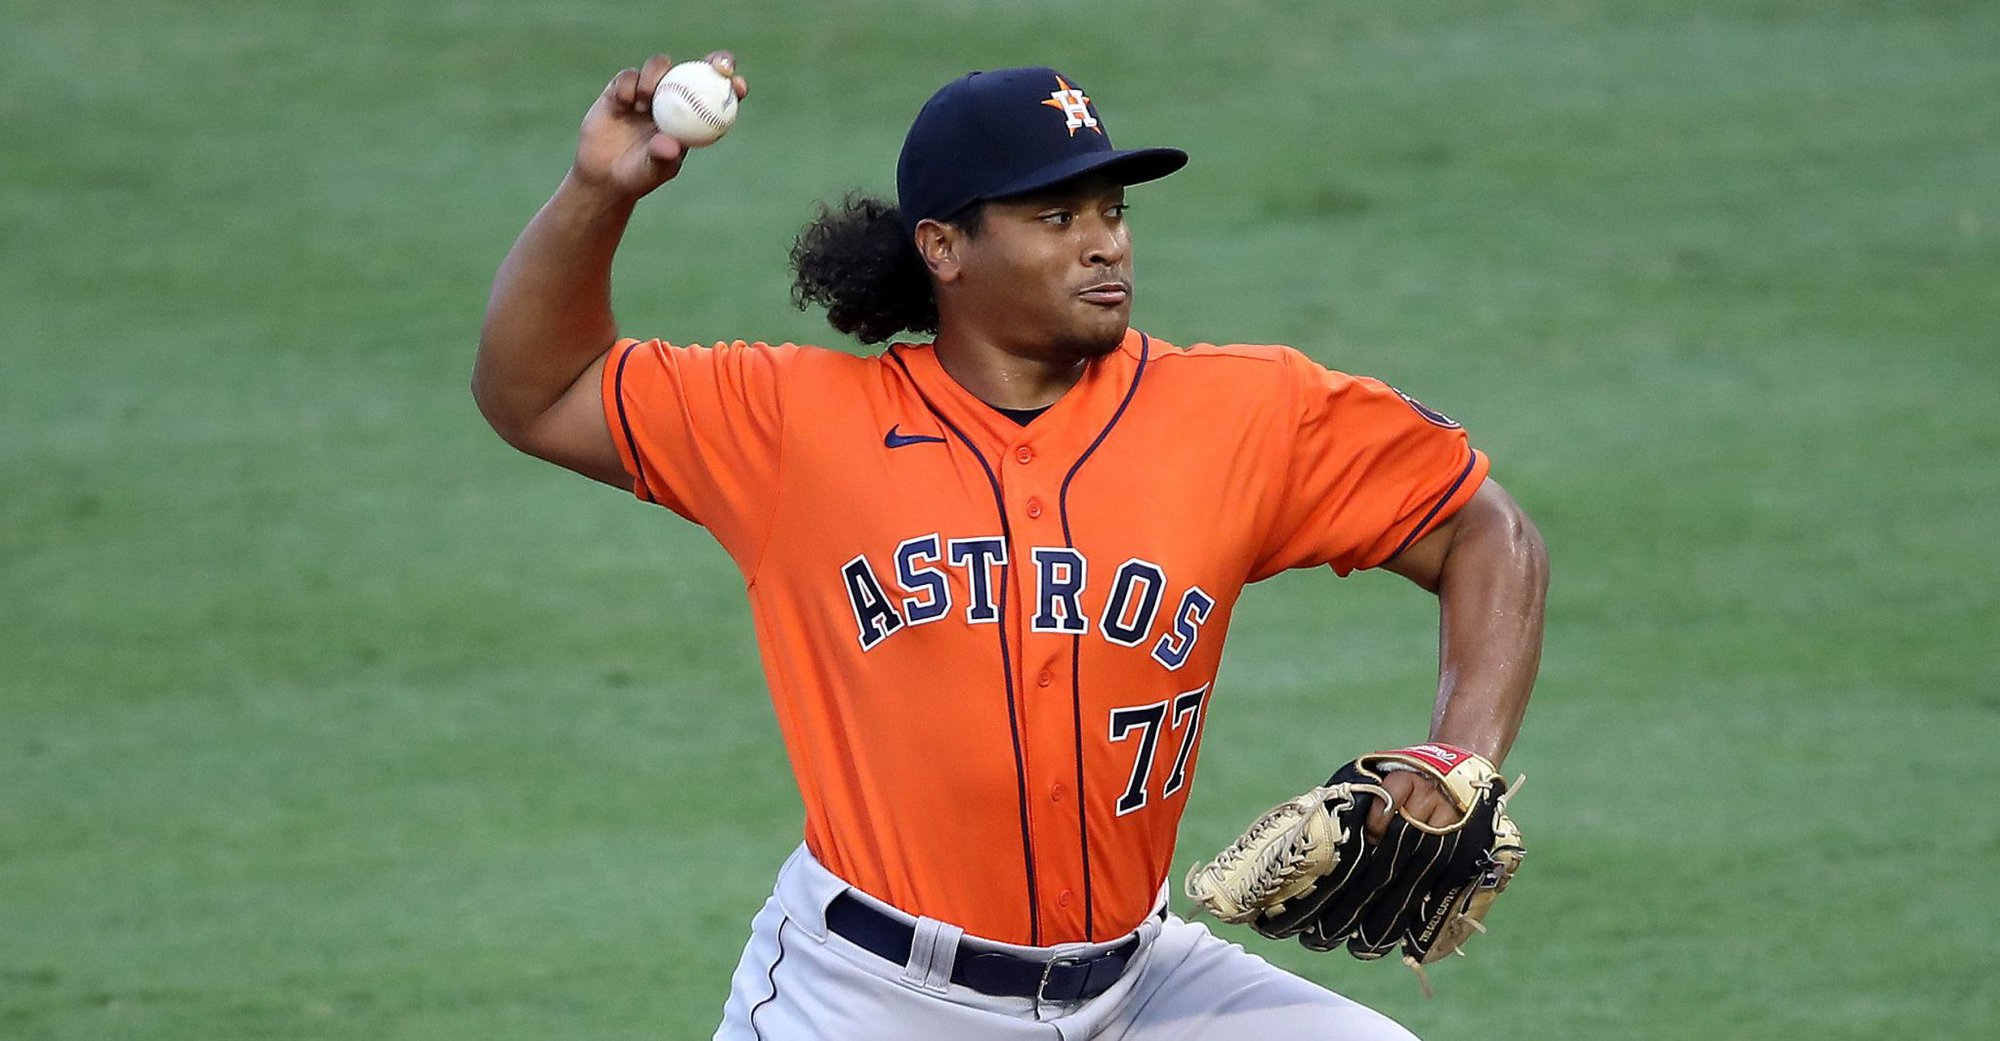 Houston Astros vs. Seattle Mariners Preview (July 26): Will Surging Seattle Get a Reality Check Tonight in Houston?